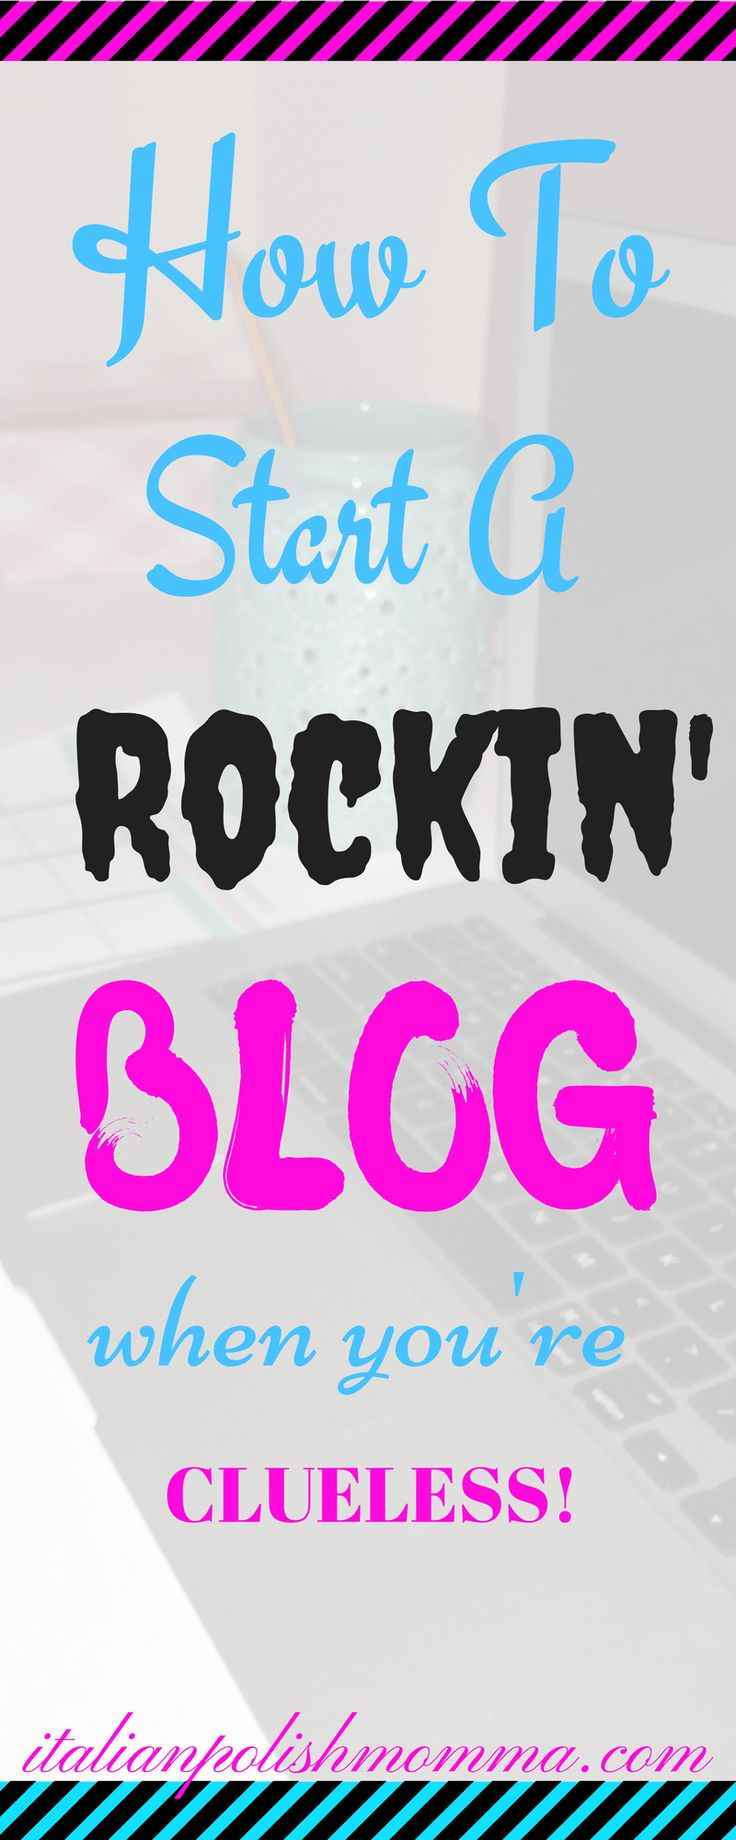 Want to start a rockin' blog? Click here for a step by step guide that will show you how to start your blog in no time! This guide is great for beginners and will get help you start your journey to making money online with a blog!